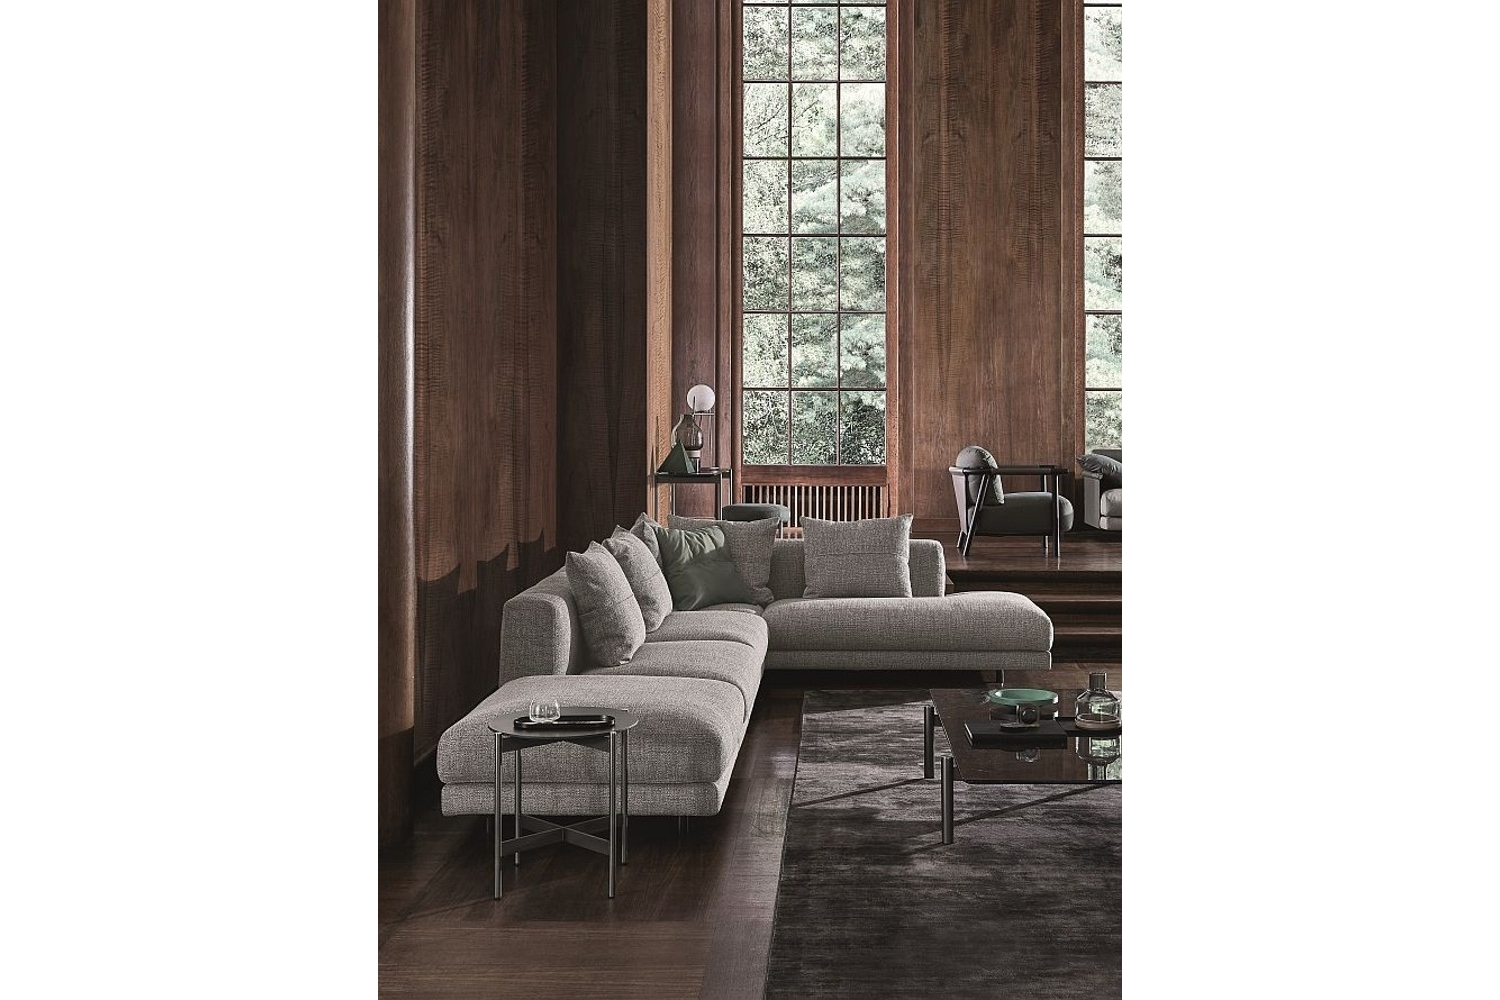 890 zzz2219.jpg Nevyll sofa_Made by Ditre Italia_In Italy_Low back and High back options_ Fabric and Leather Upholstery 890 zzz2219.jpg